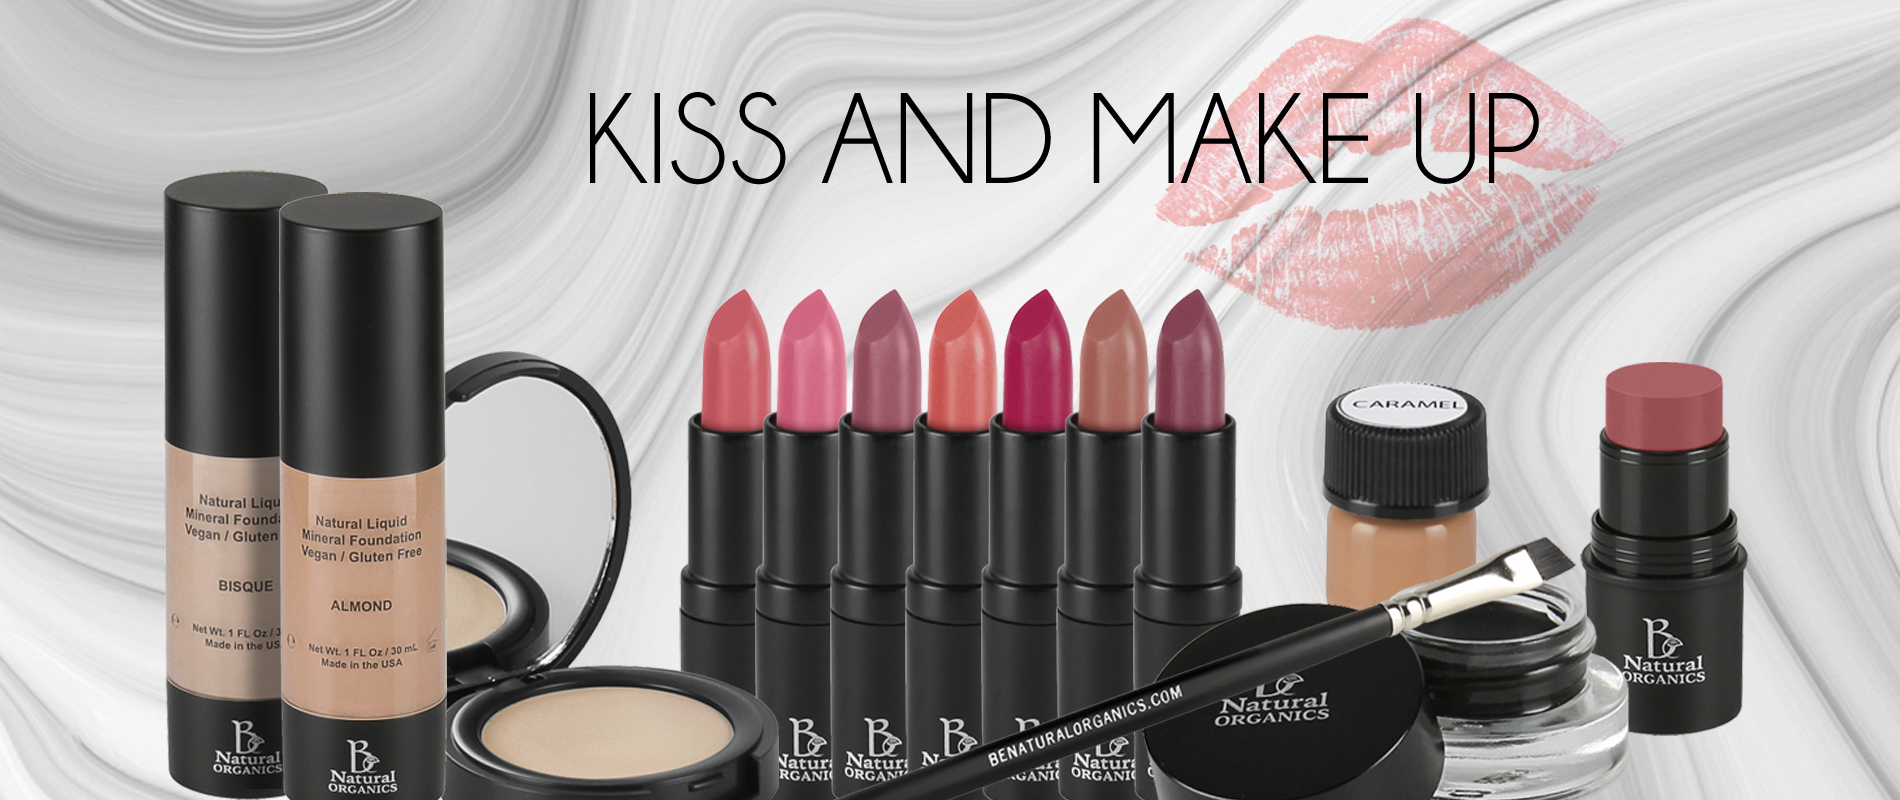 KISS AND MAKE UP 25%OFF slider 1900x800